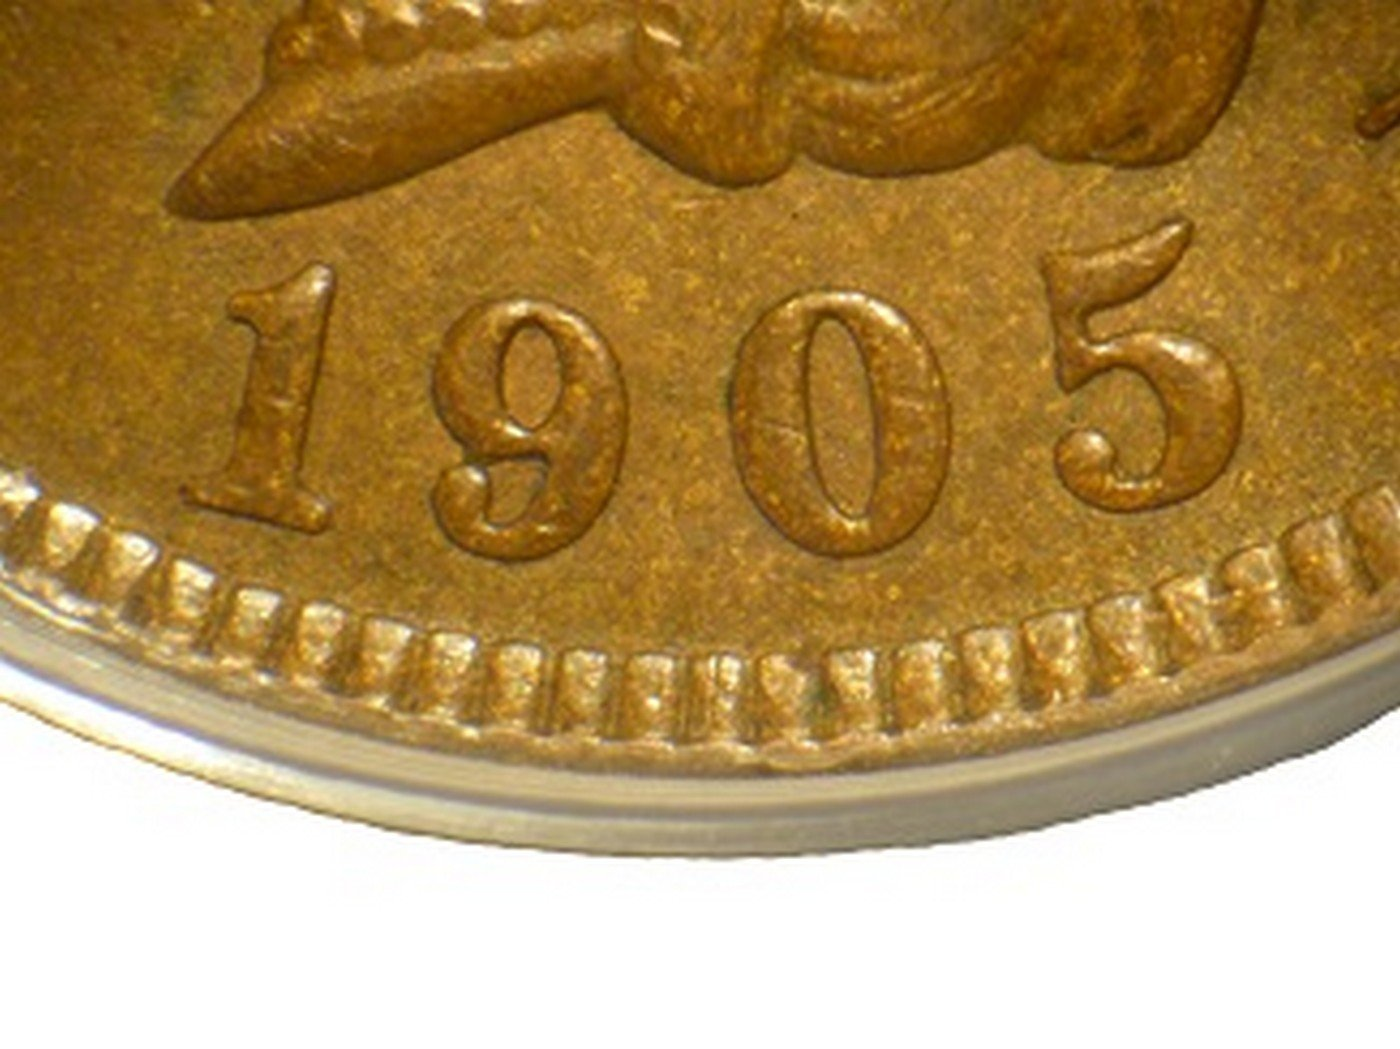 1905 MPD-002 - Indian Head Penny - Photo by David Poliquin